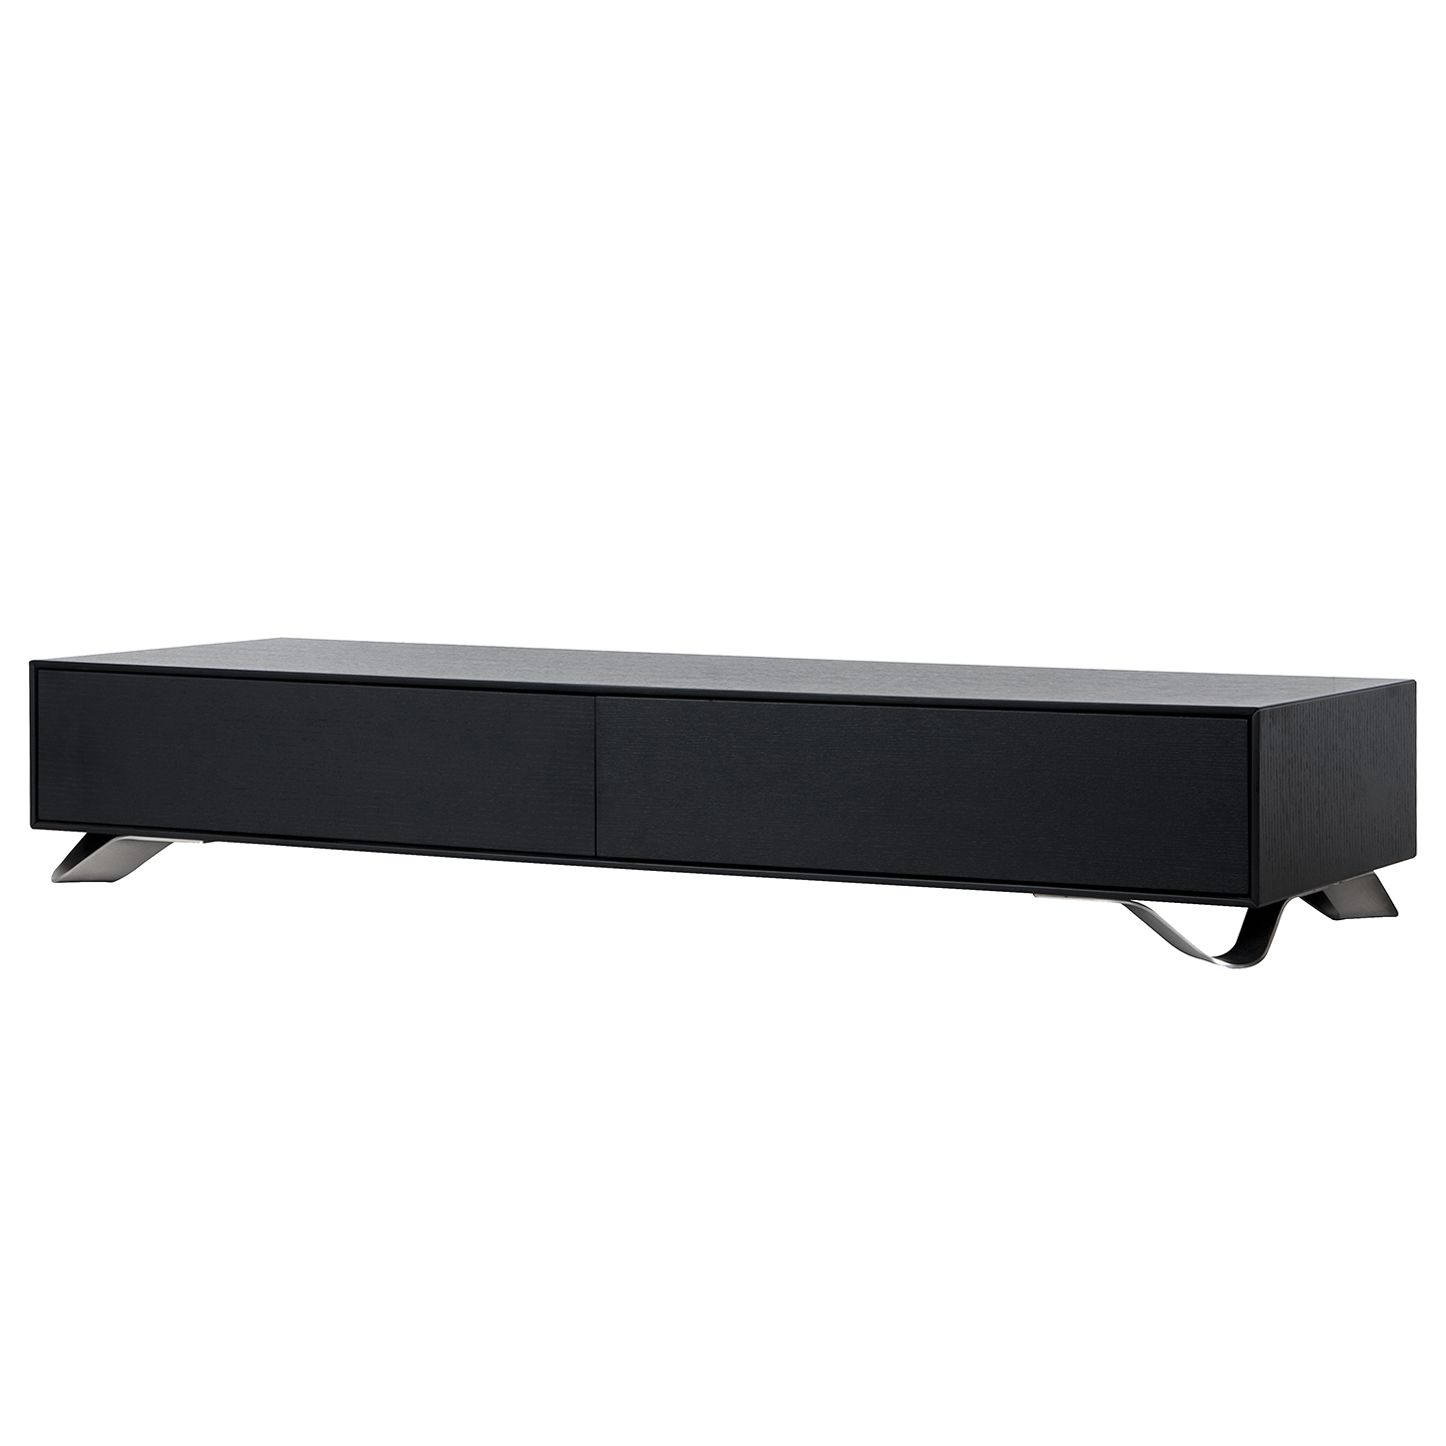 tv lowboard boomerang ii schwarz studio copenhagen online kaufen. Black Bedroom Furniture Sets. Home Design Ideas